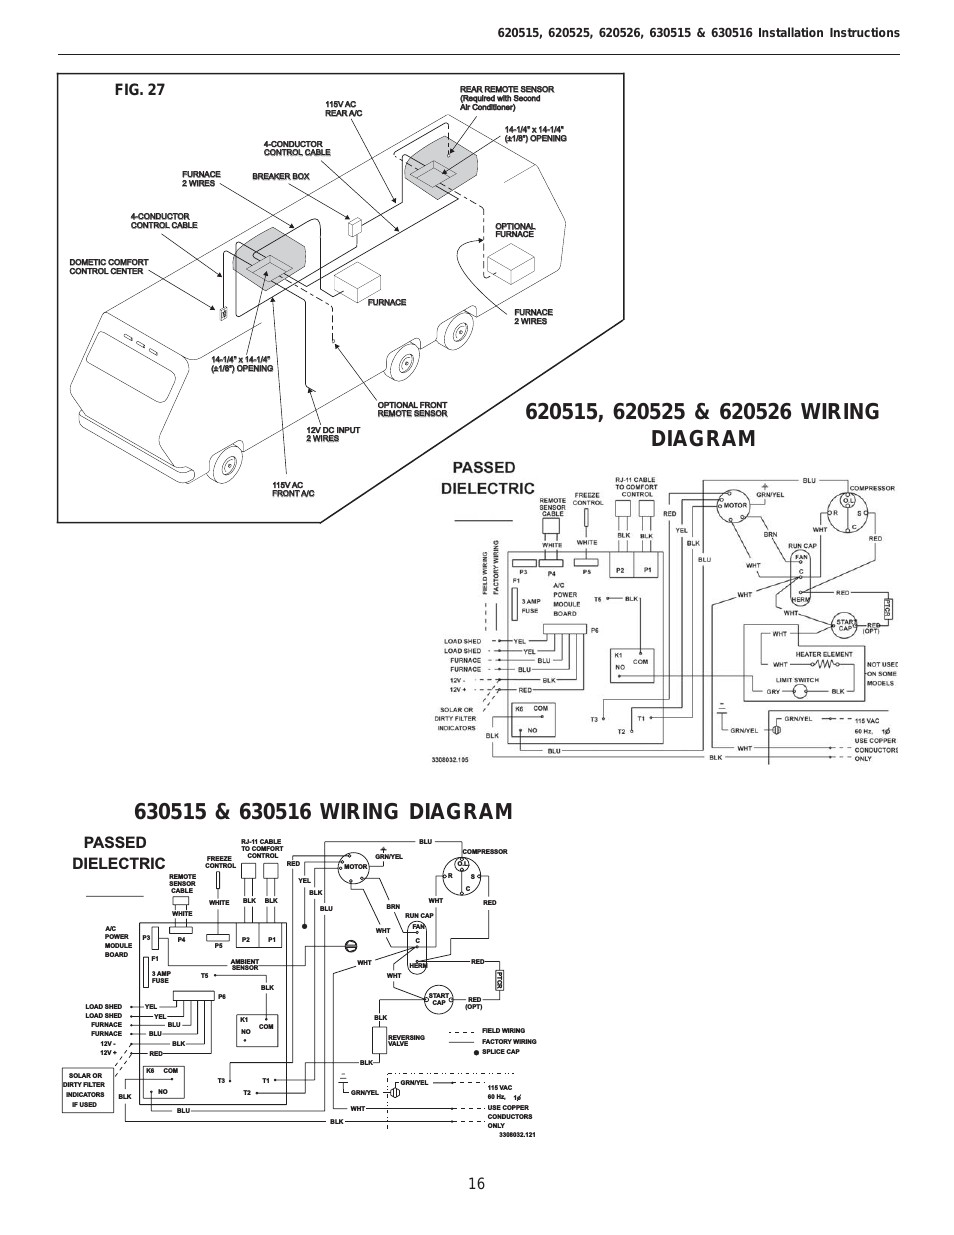 Dometic Thermostat Wiring Diagram Awesome Image Rv Duo Therm Ac Free Contemporary